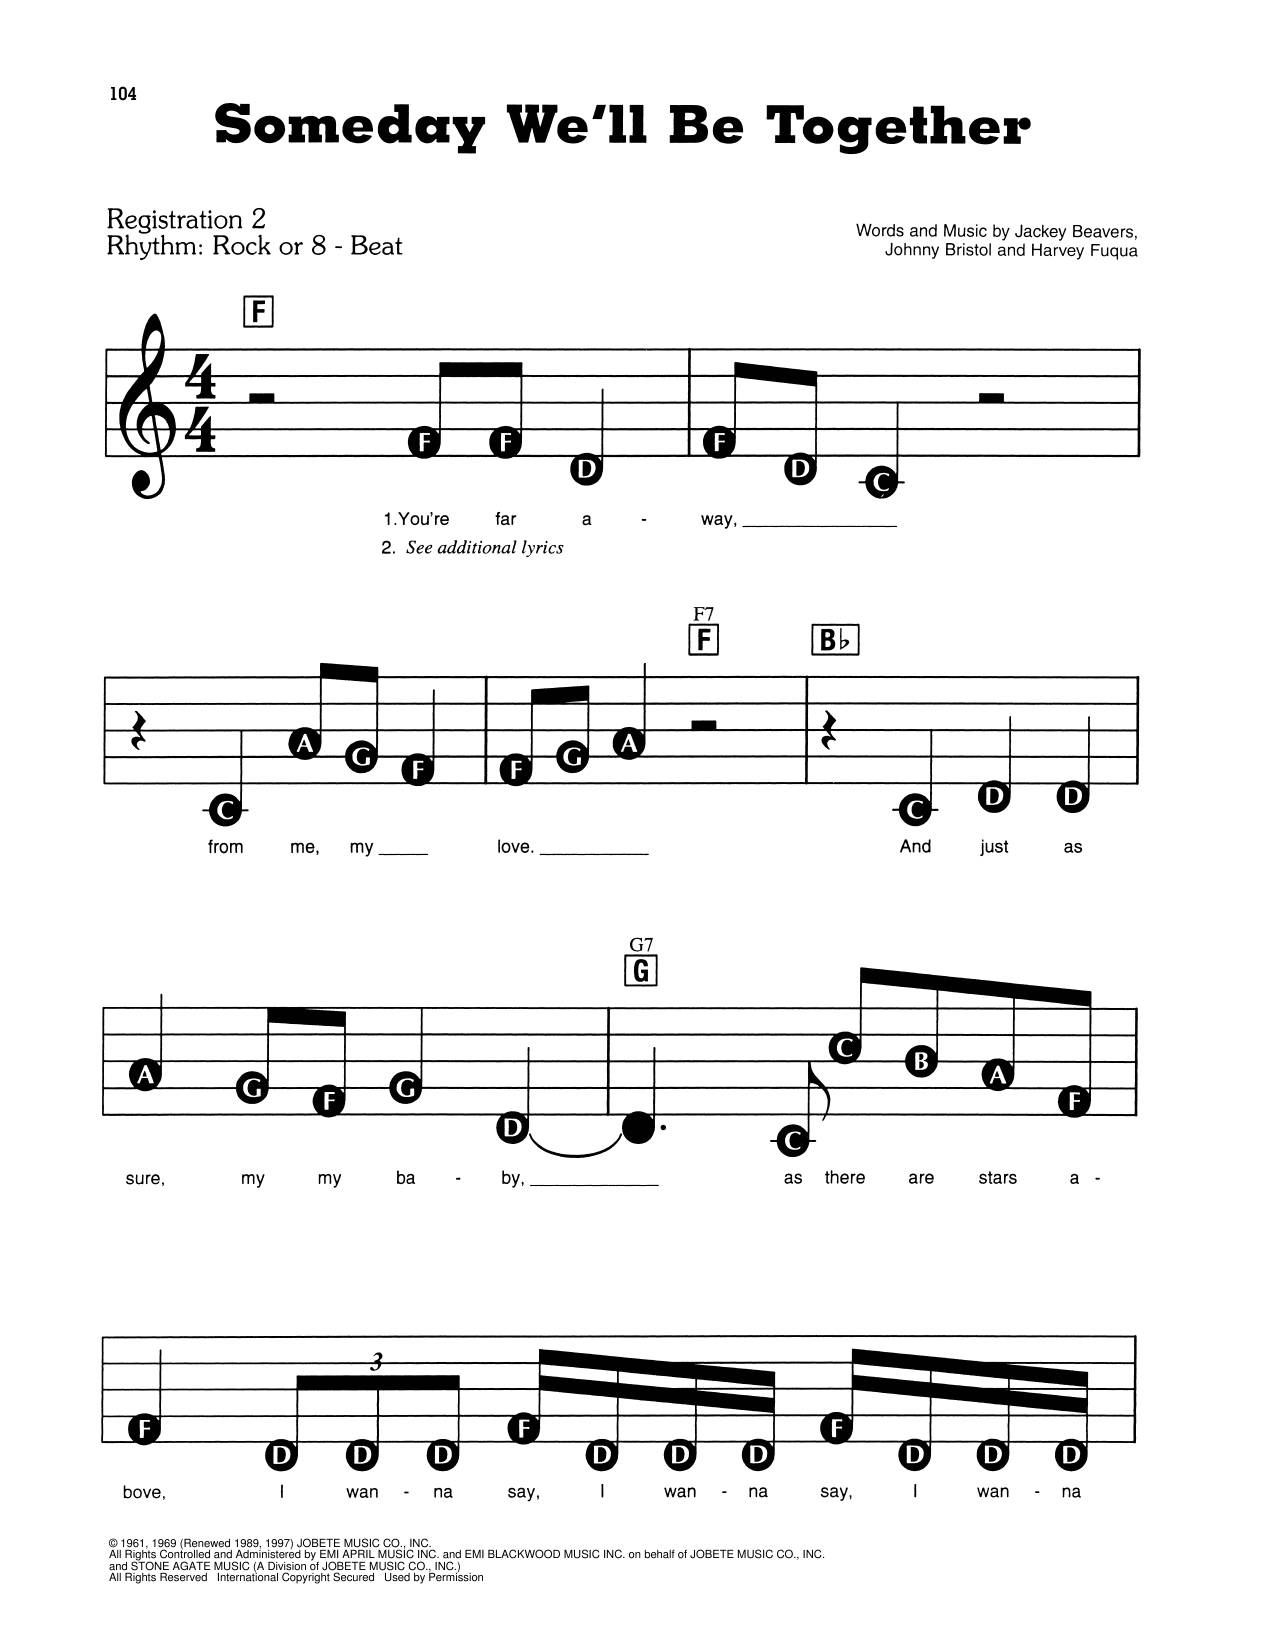 Someday We'll Be Together Sheet Music